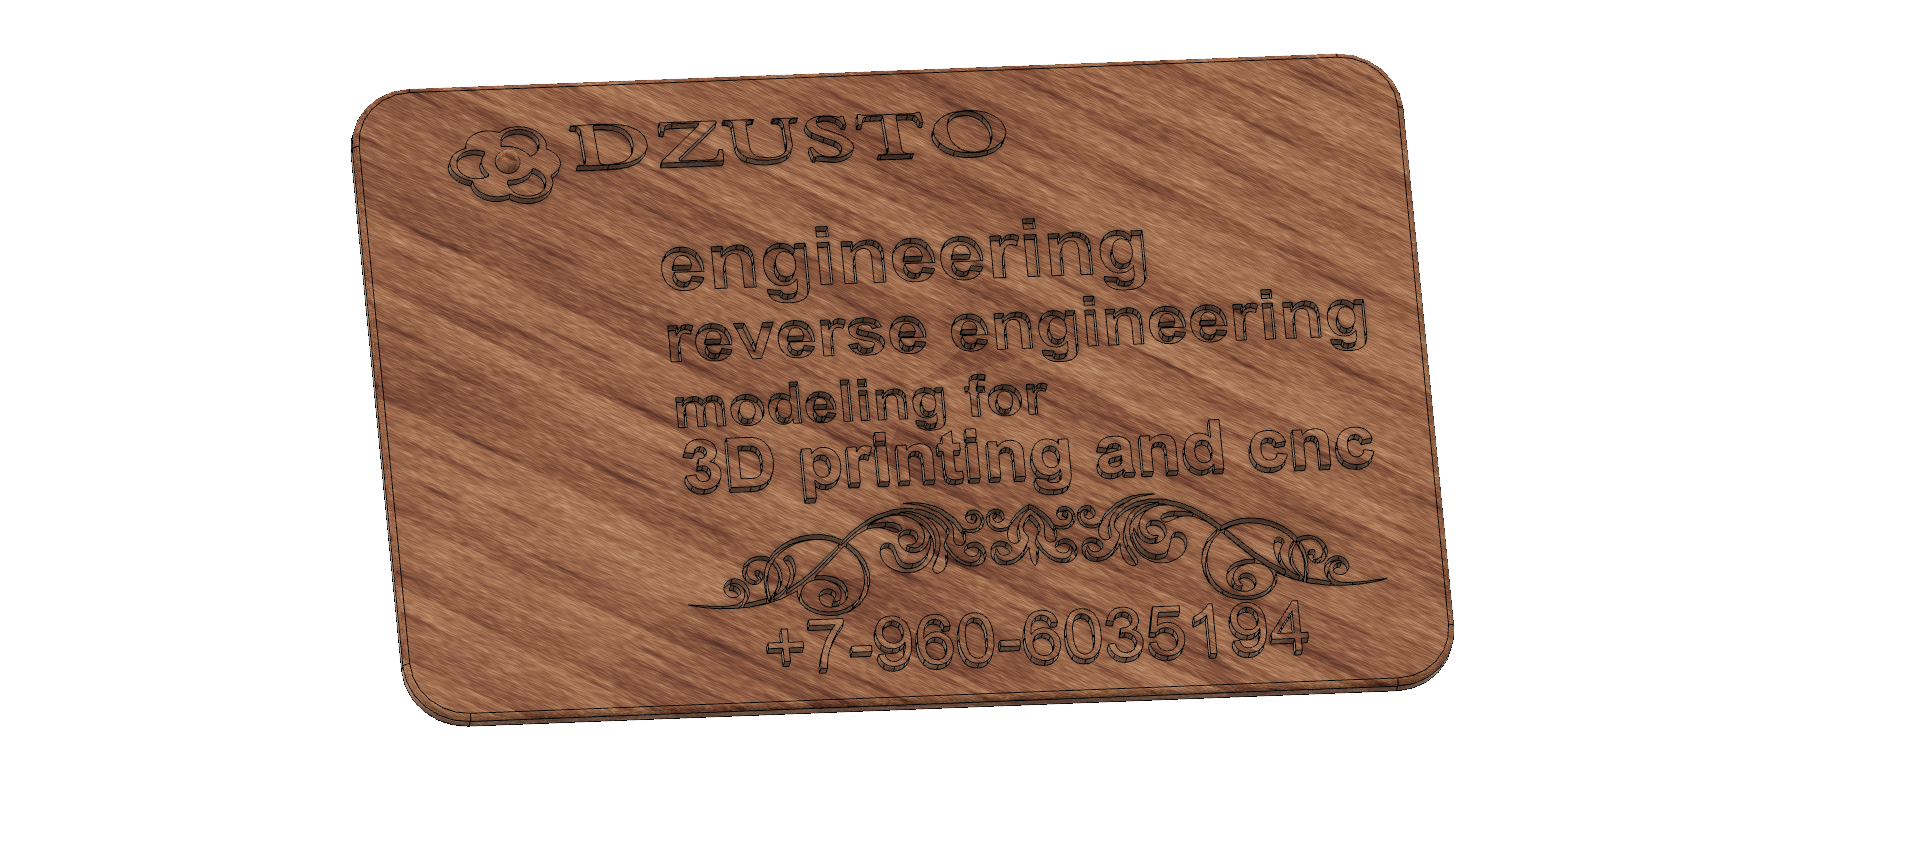 business card 01 v4.png Download free STL file Modeling product engineering and reverse-engineering  for CNC machines and 3D printing • 3D printable object, Dzusto